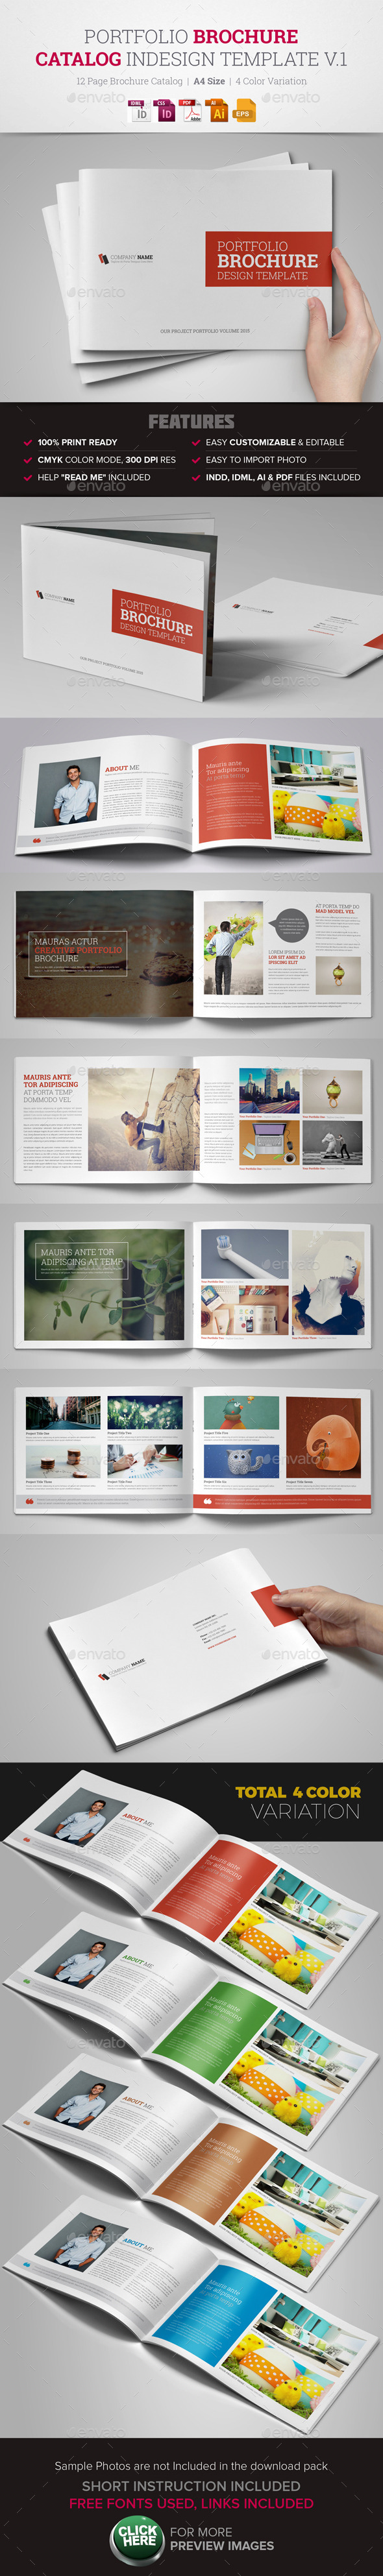 Portfolio Brochure InDesign - Corporate Brochures